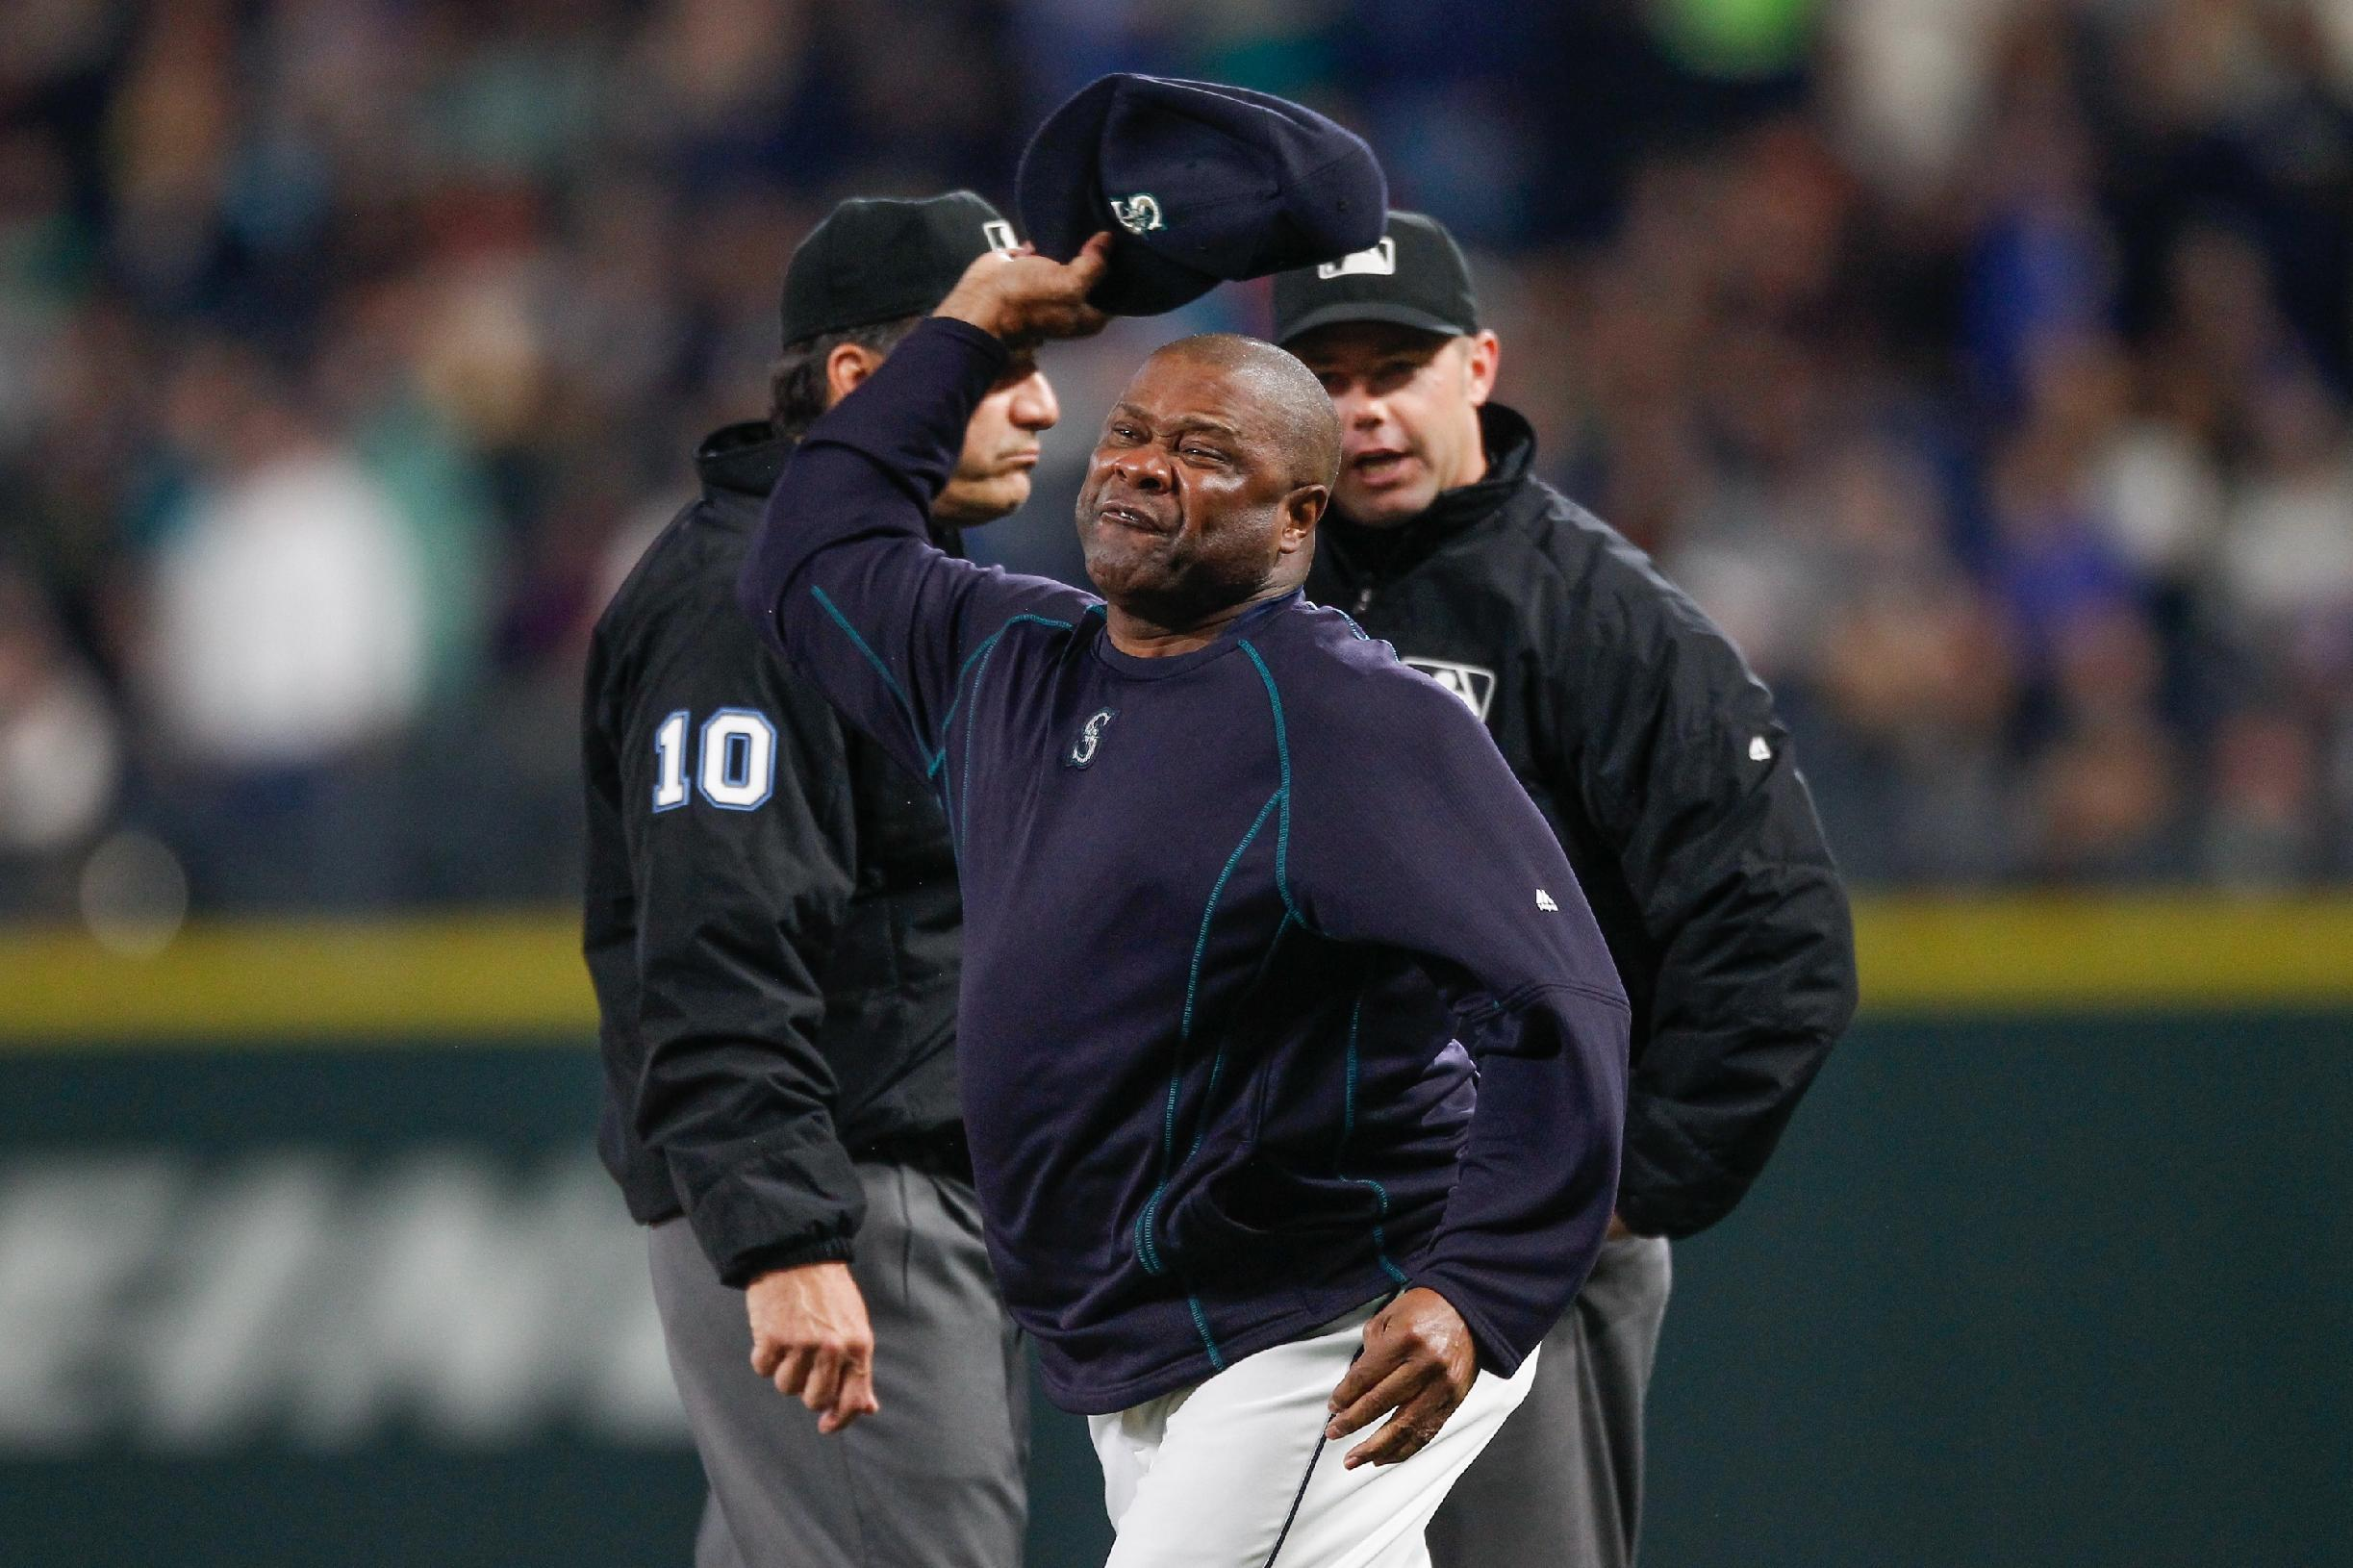 Lloyd McClendon lets every umpire know how he feels following ejection